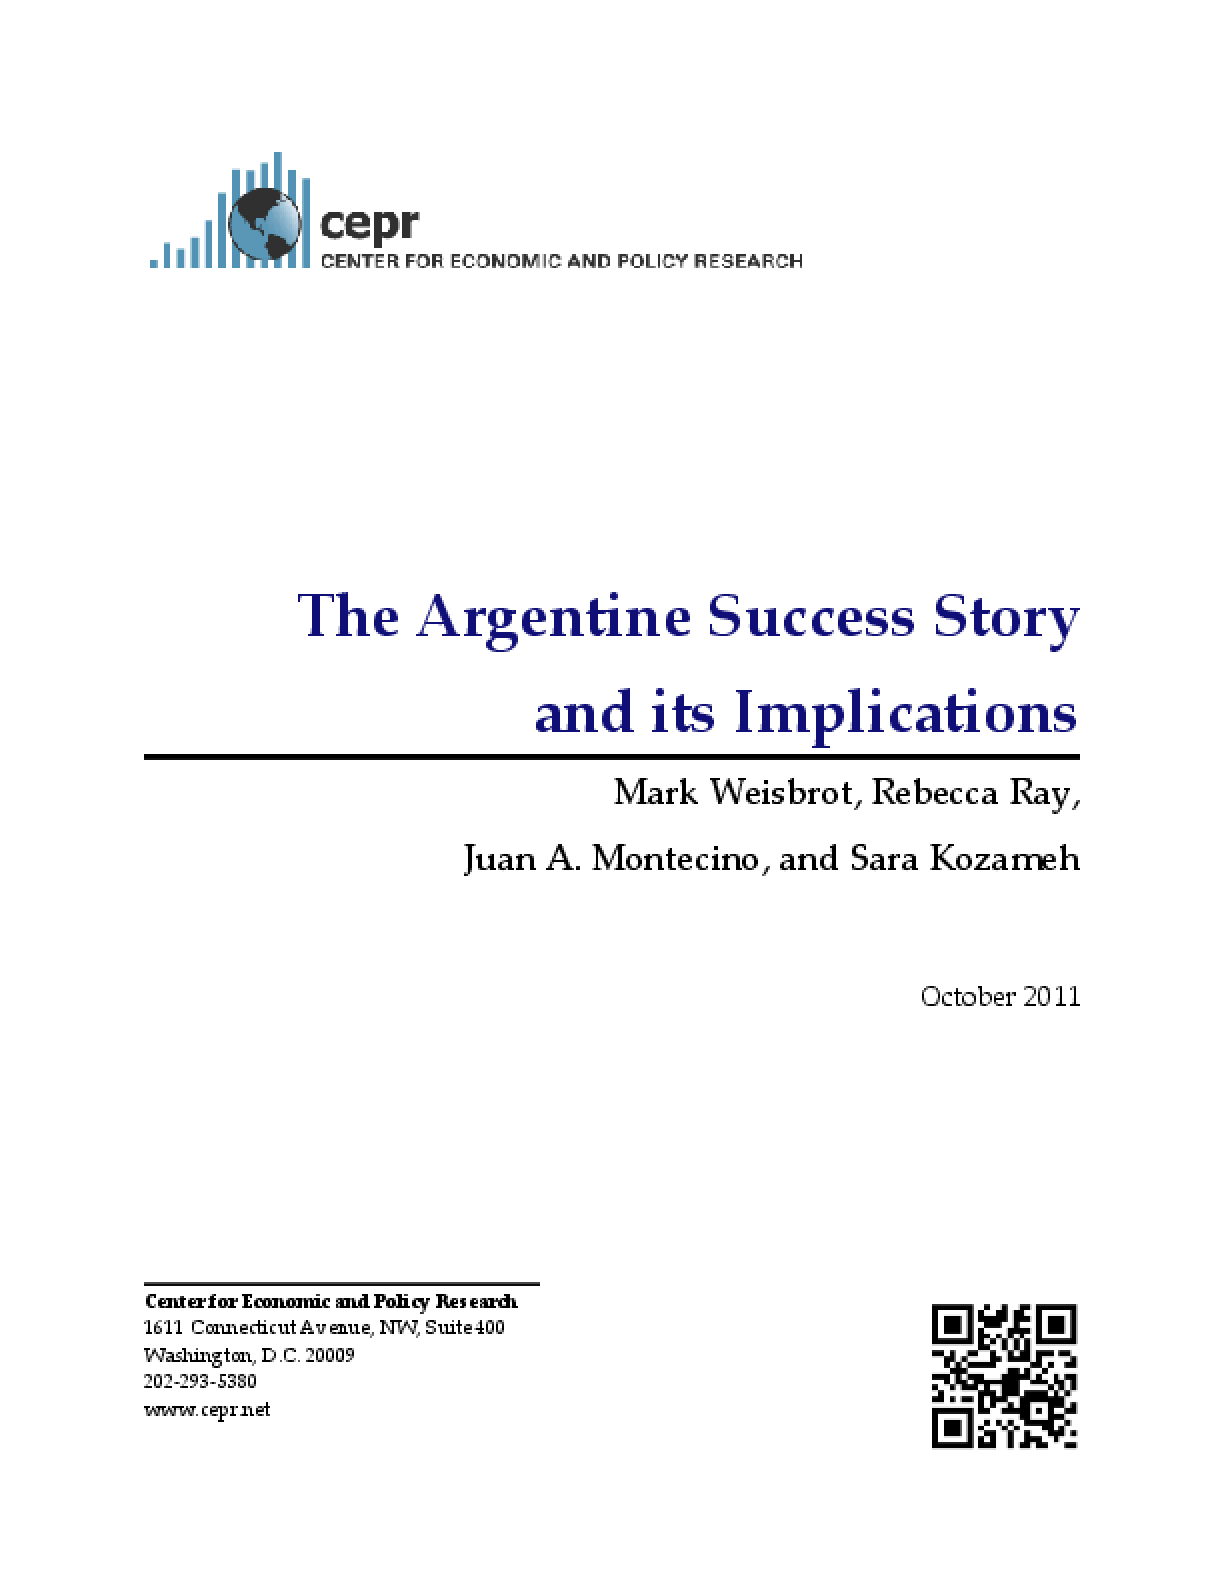 The Argentine Success Story and its Implications